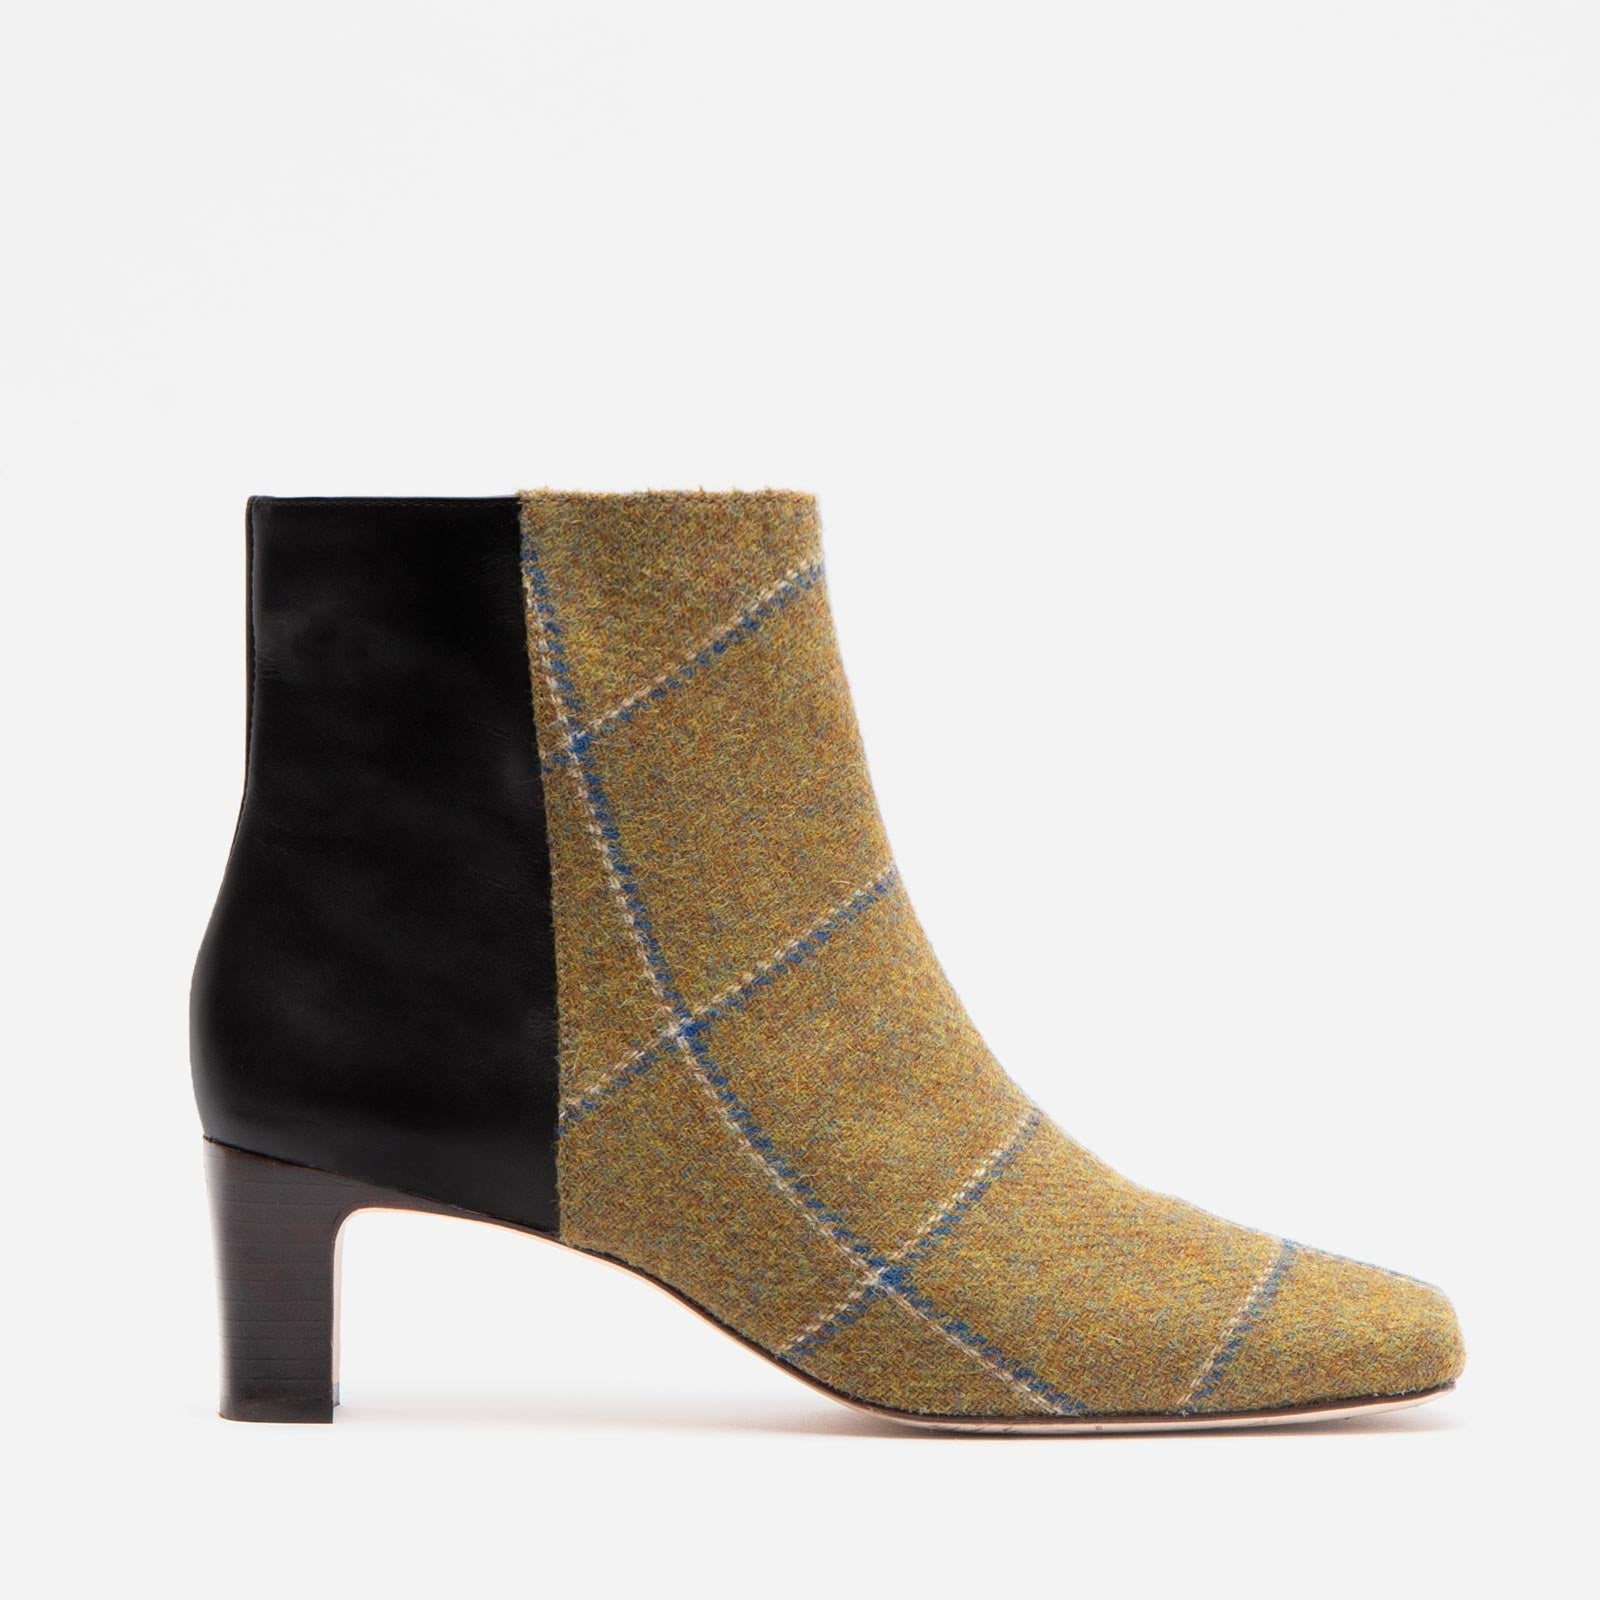 Eleanor Boot Wool Plaid Olive Navy - Frances Valentine